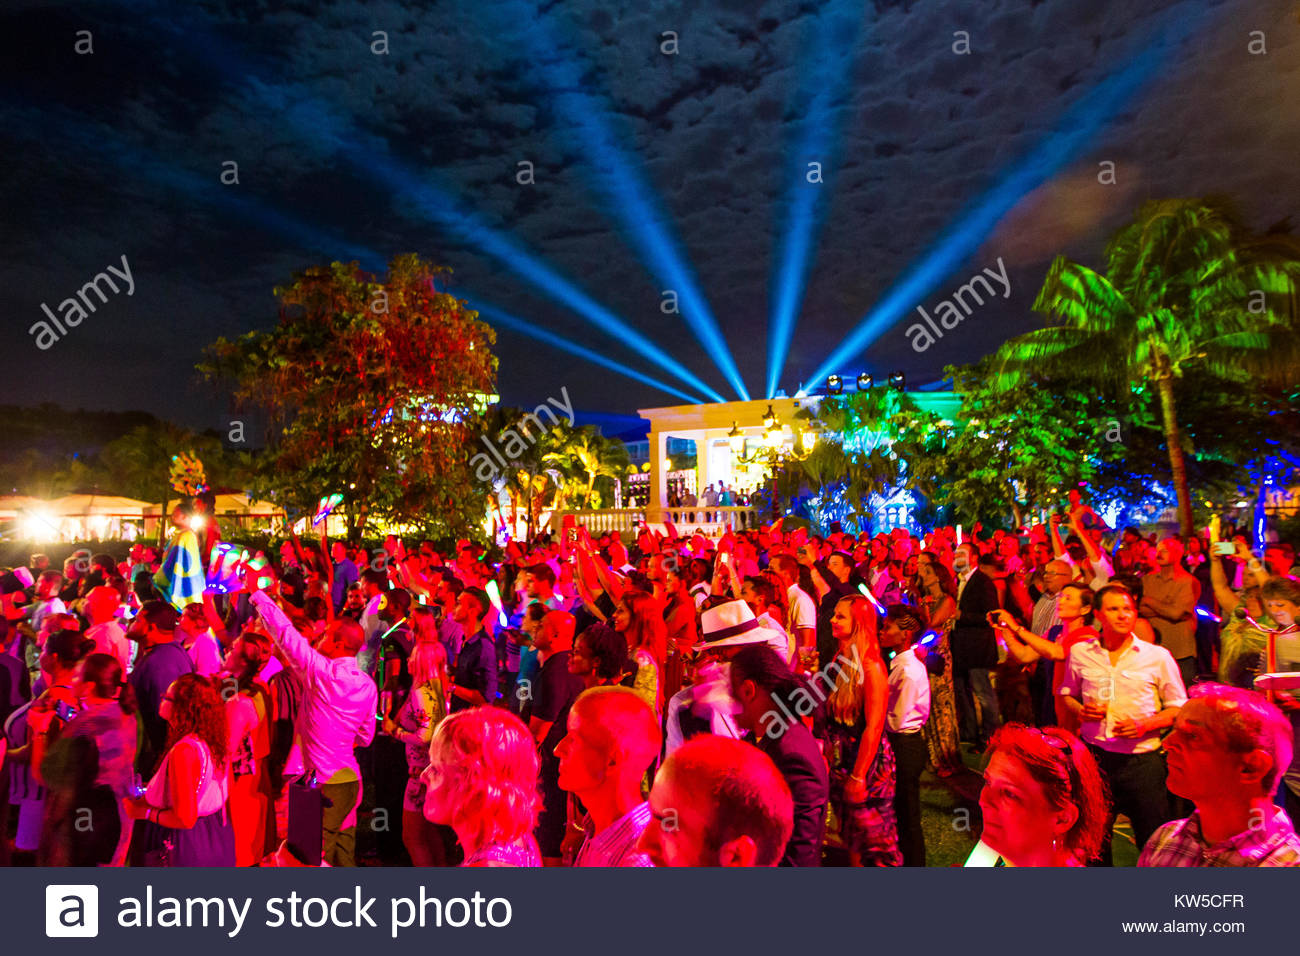 Laser lights shine into the sky during a concert at Sandals Resort in Ocho Rios. - Stock Image